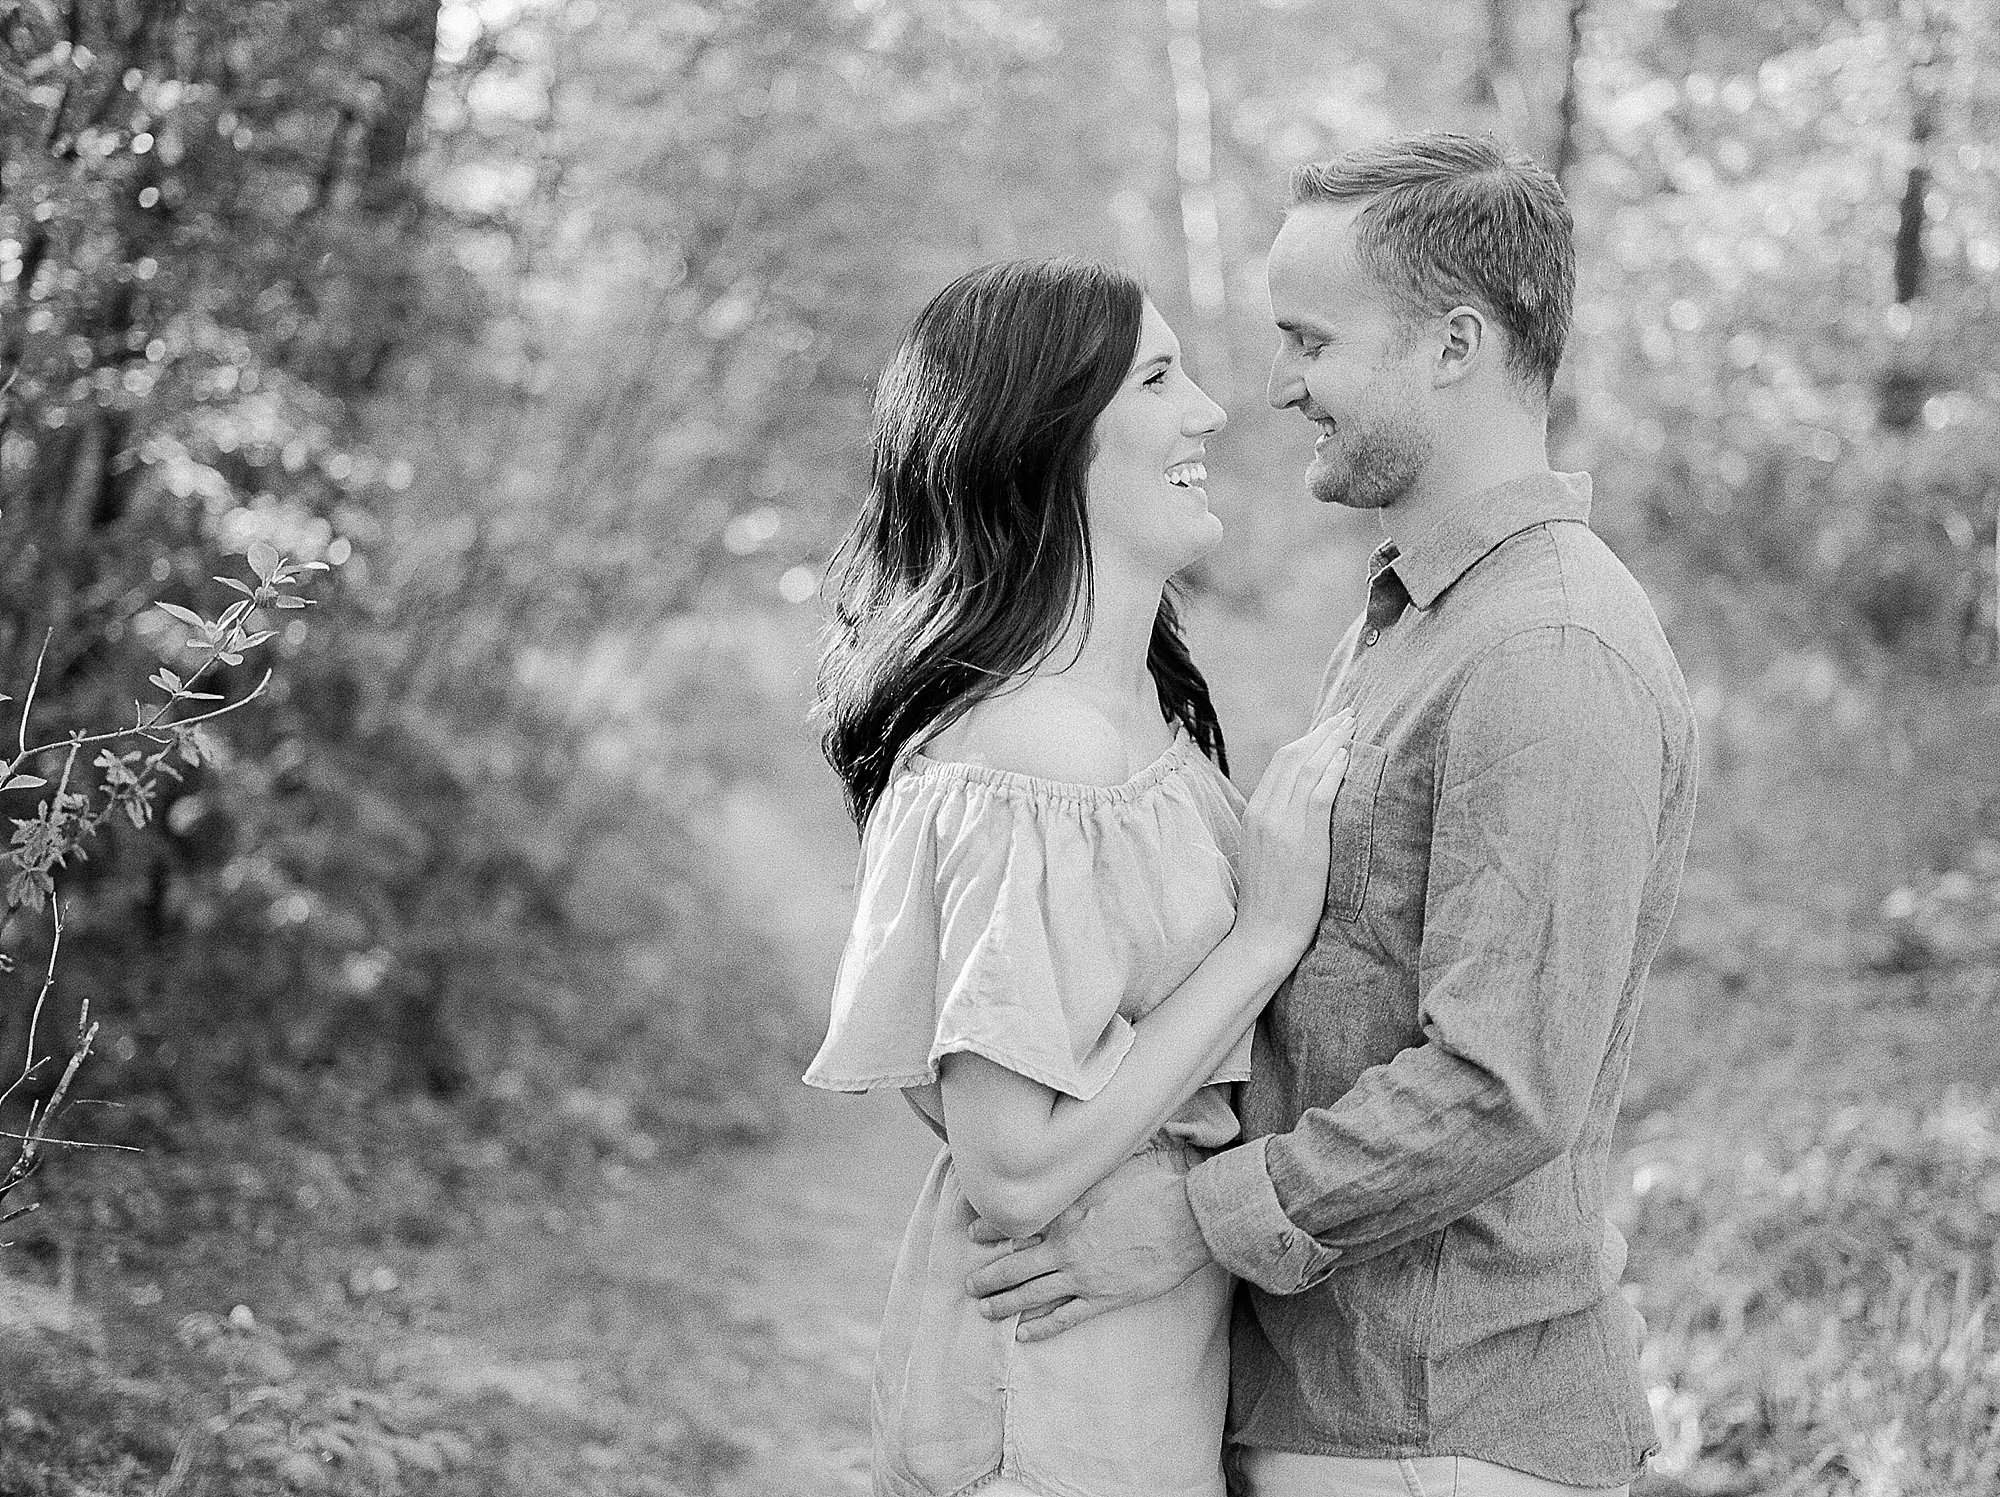 winnipeg wedding venue, winnipeg engagement session, engagement photos pose ideas, cute outfits for engagement photos, black and white film, film wedding photographer